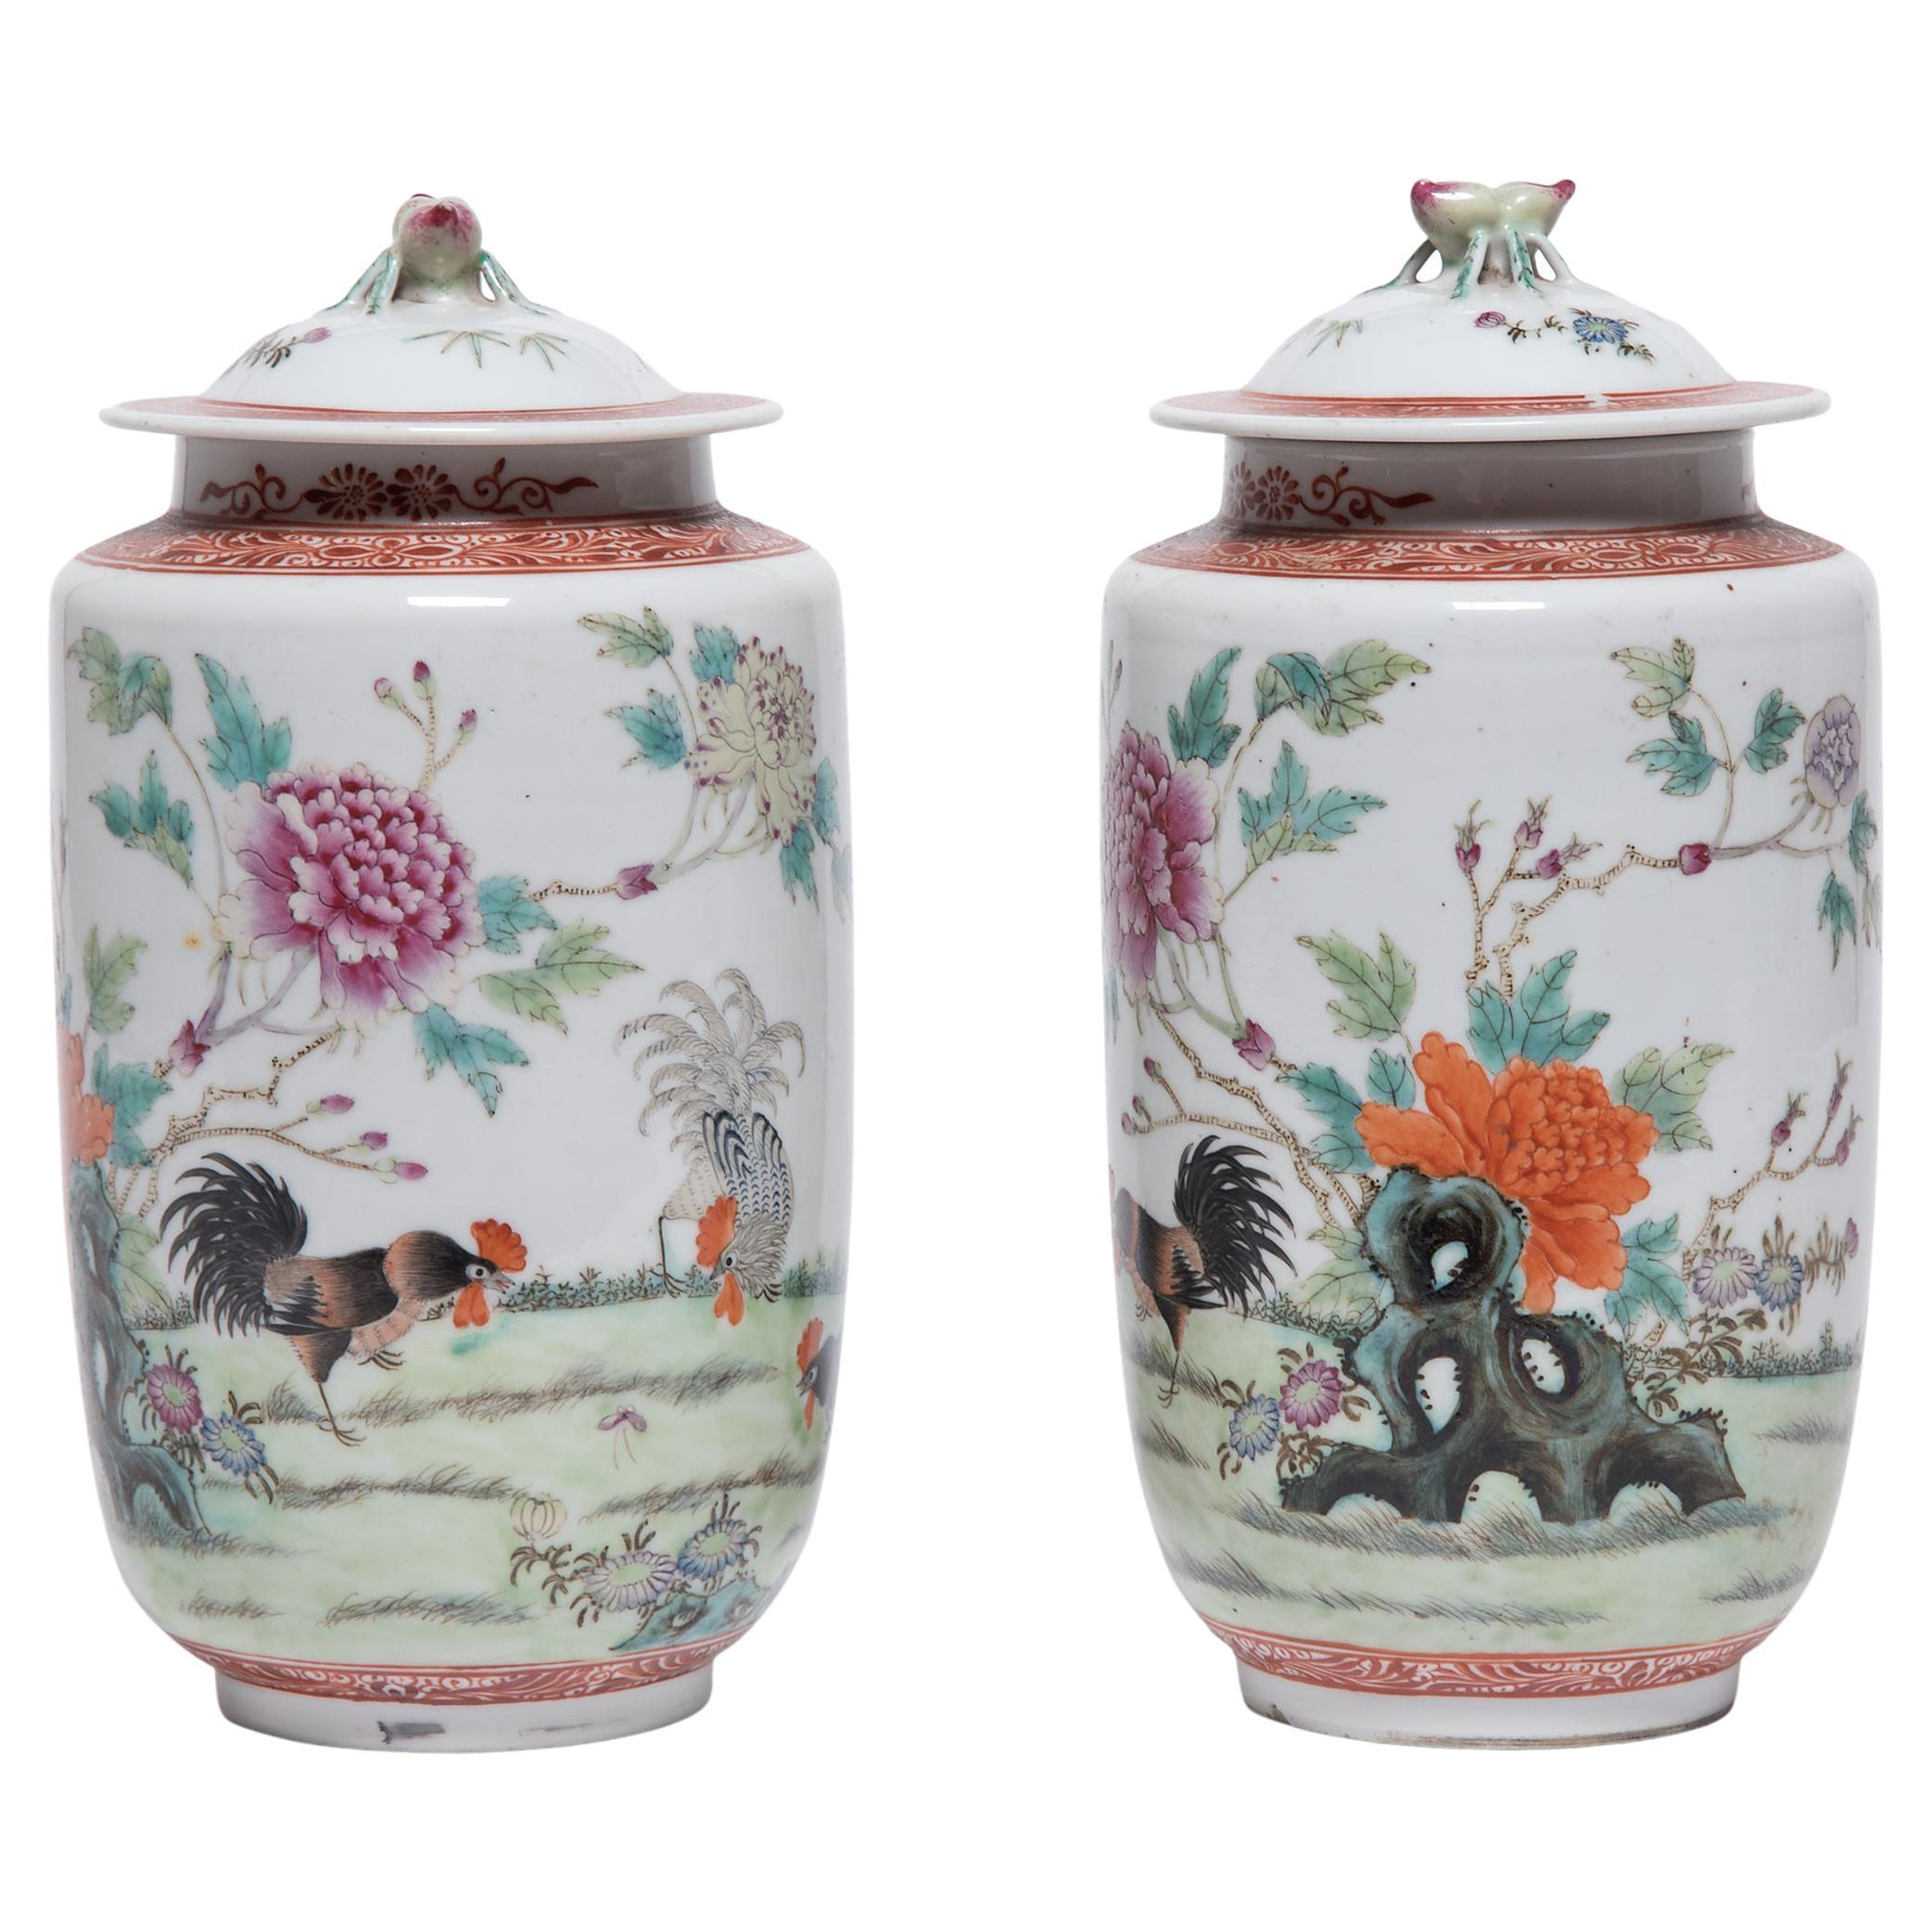 Pair of Petite Chinese Famille Rose Rooster Jars, c. 1900